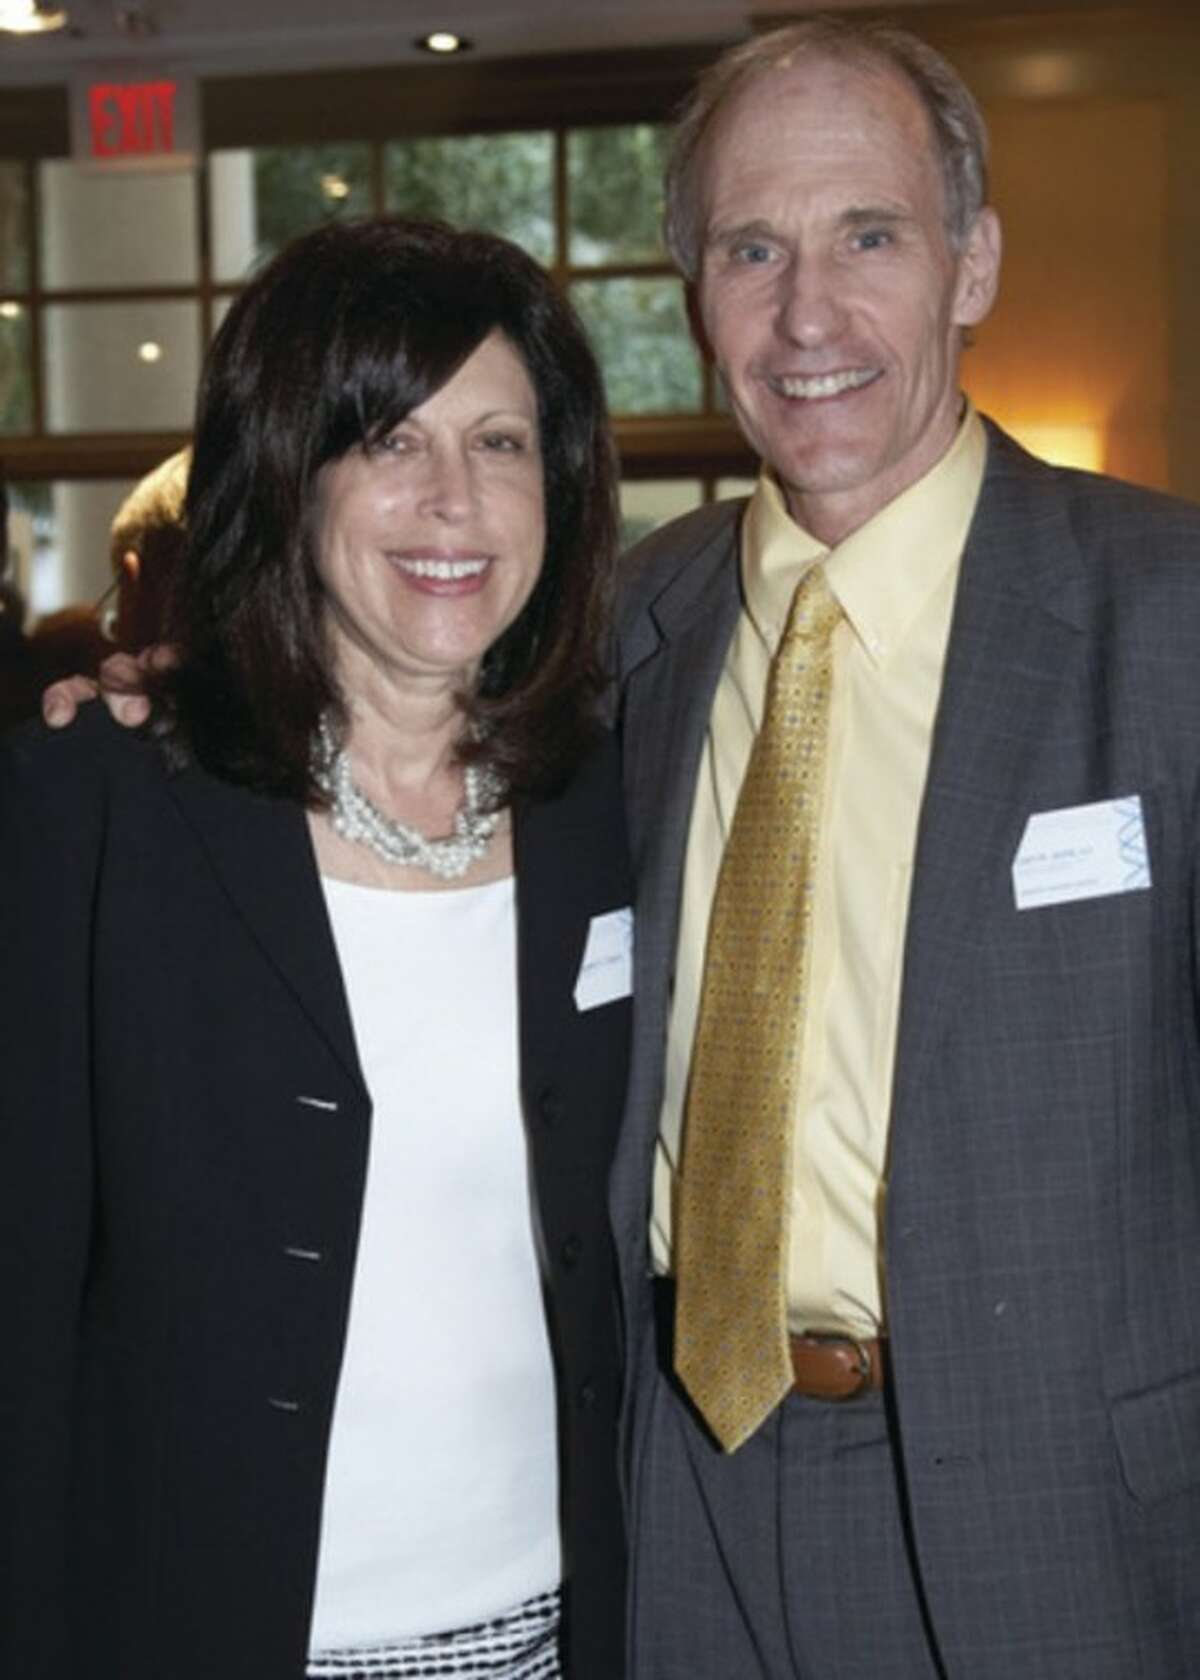 From left to right, Margaret Cianci, ACGT executive director, and Dr. June.